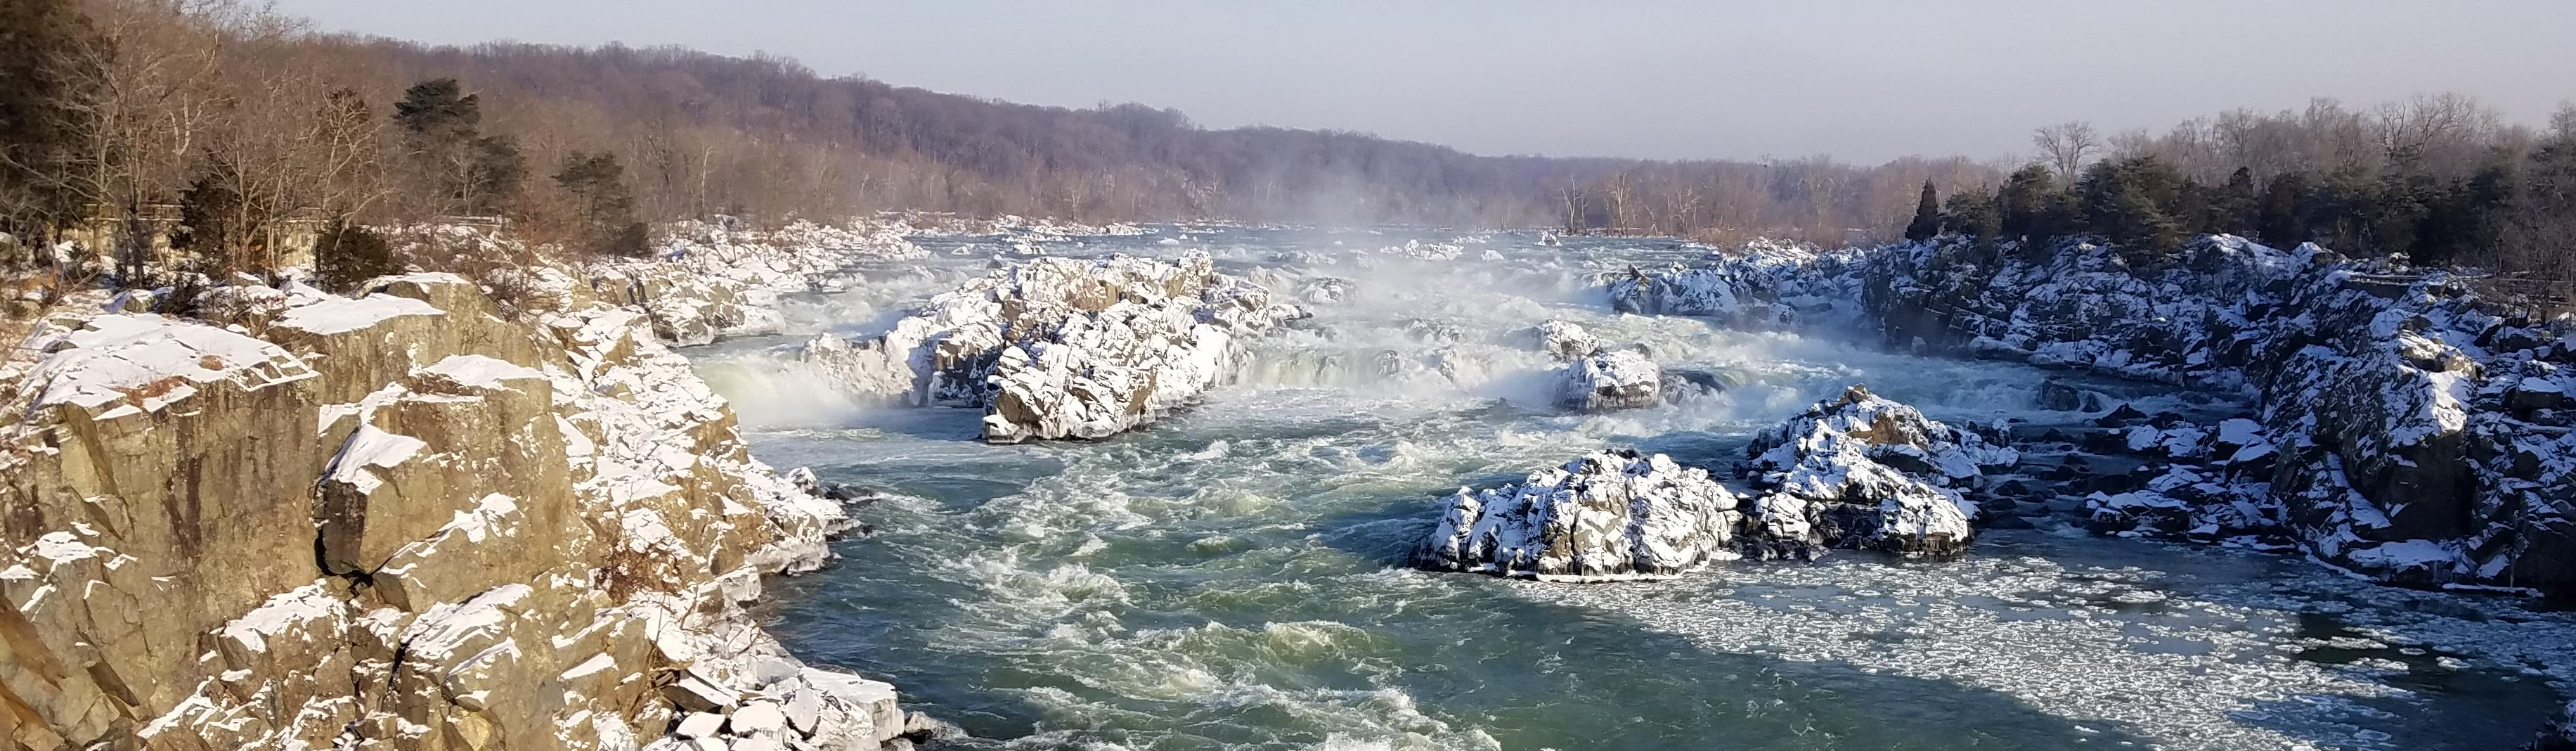 Great Falls Park (U.S. National Park Service)